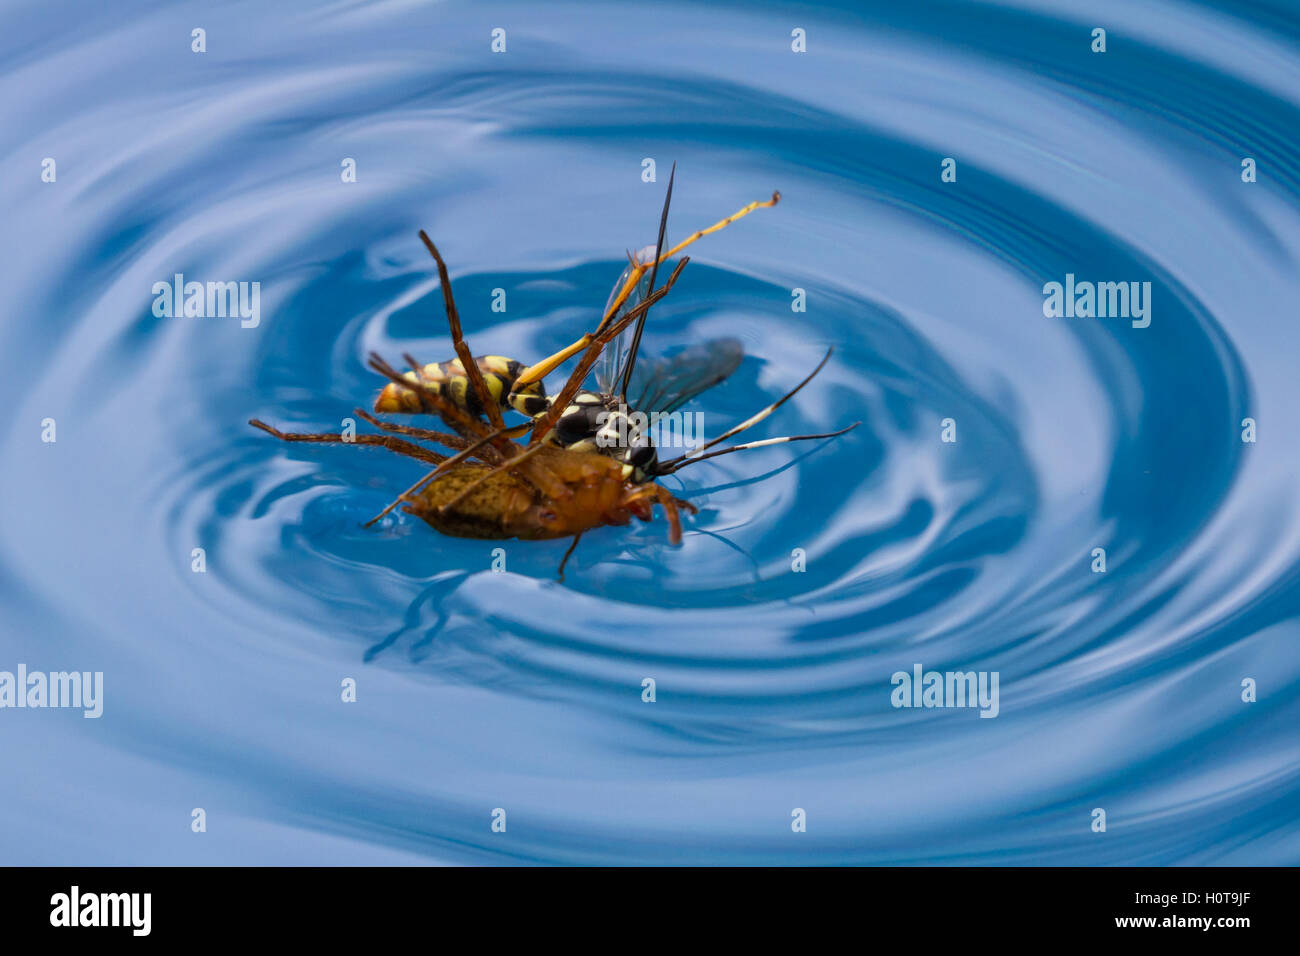 Swimming Pool Action : Spider eating wasp stock photos